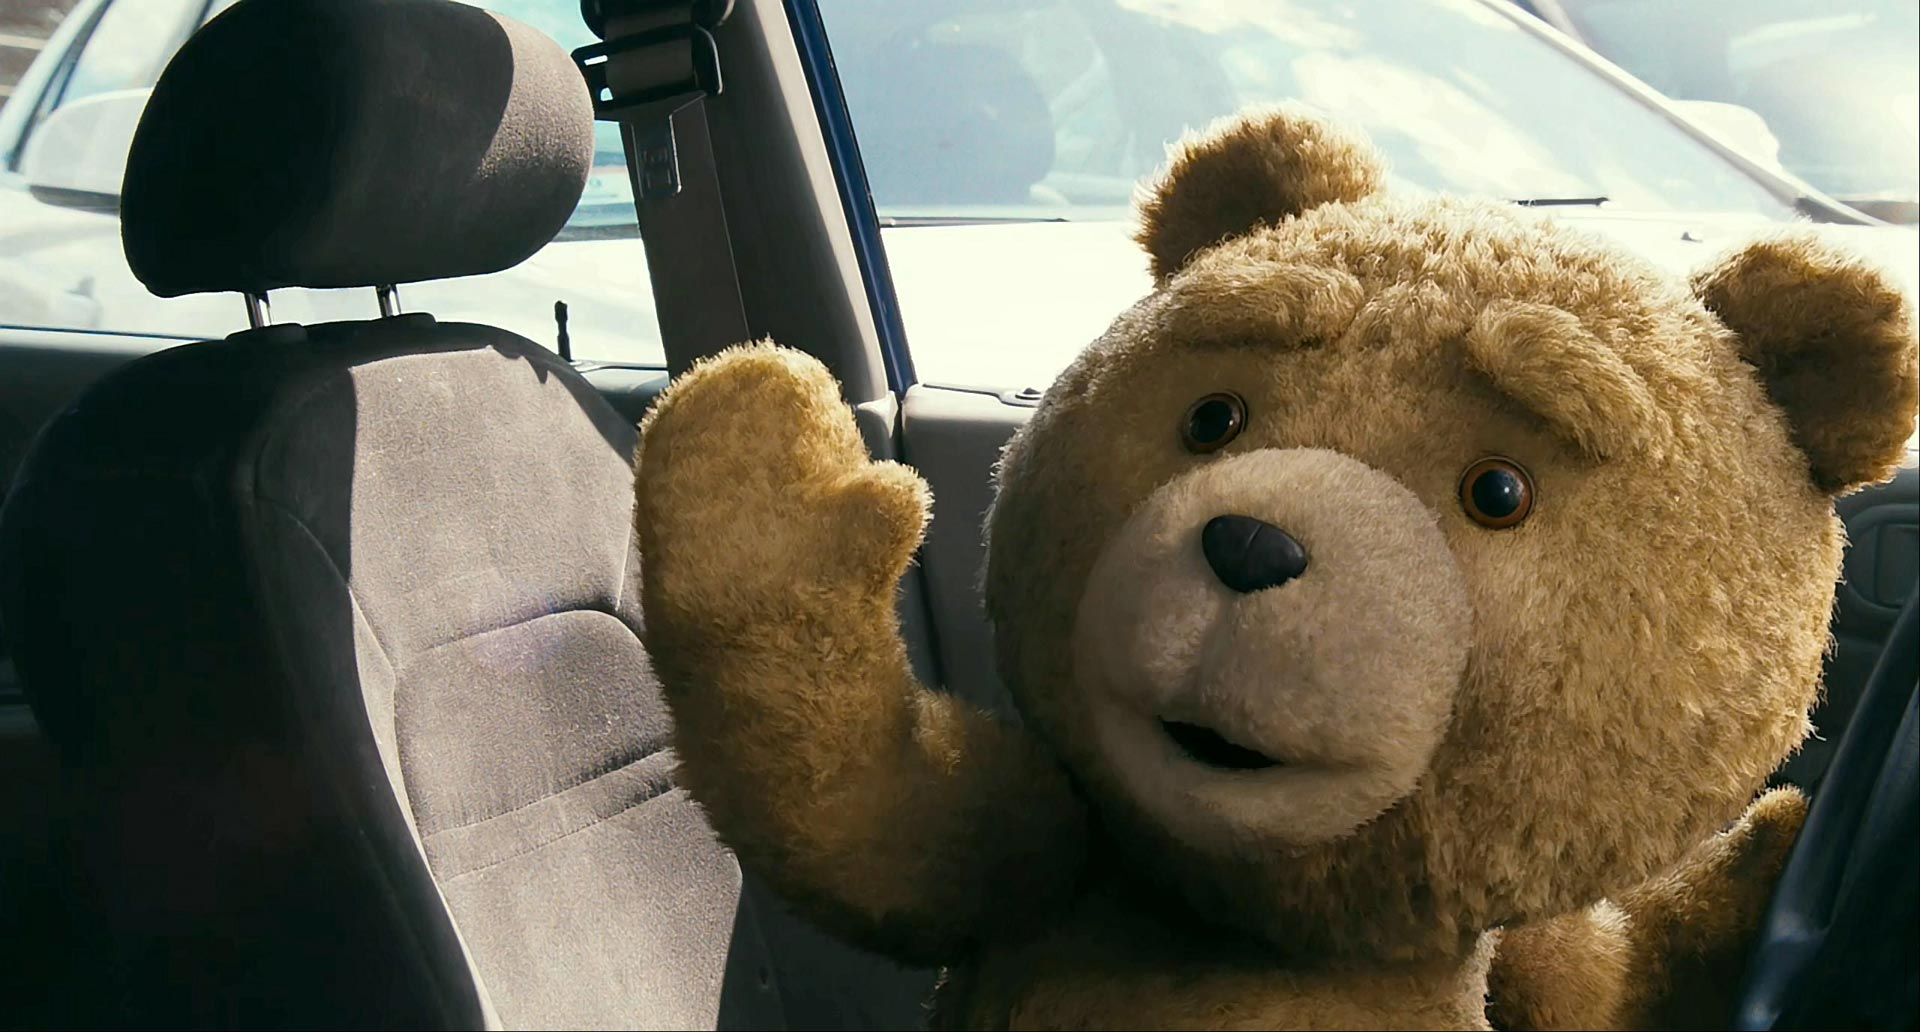 https://i2.wp.com/www.filmofilia.com/wp-content/uploads/2012/04/ted-movie-photo.jpg